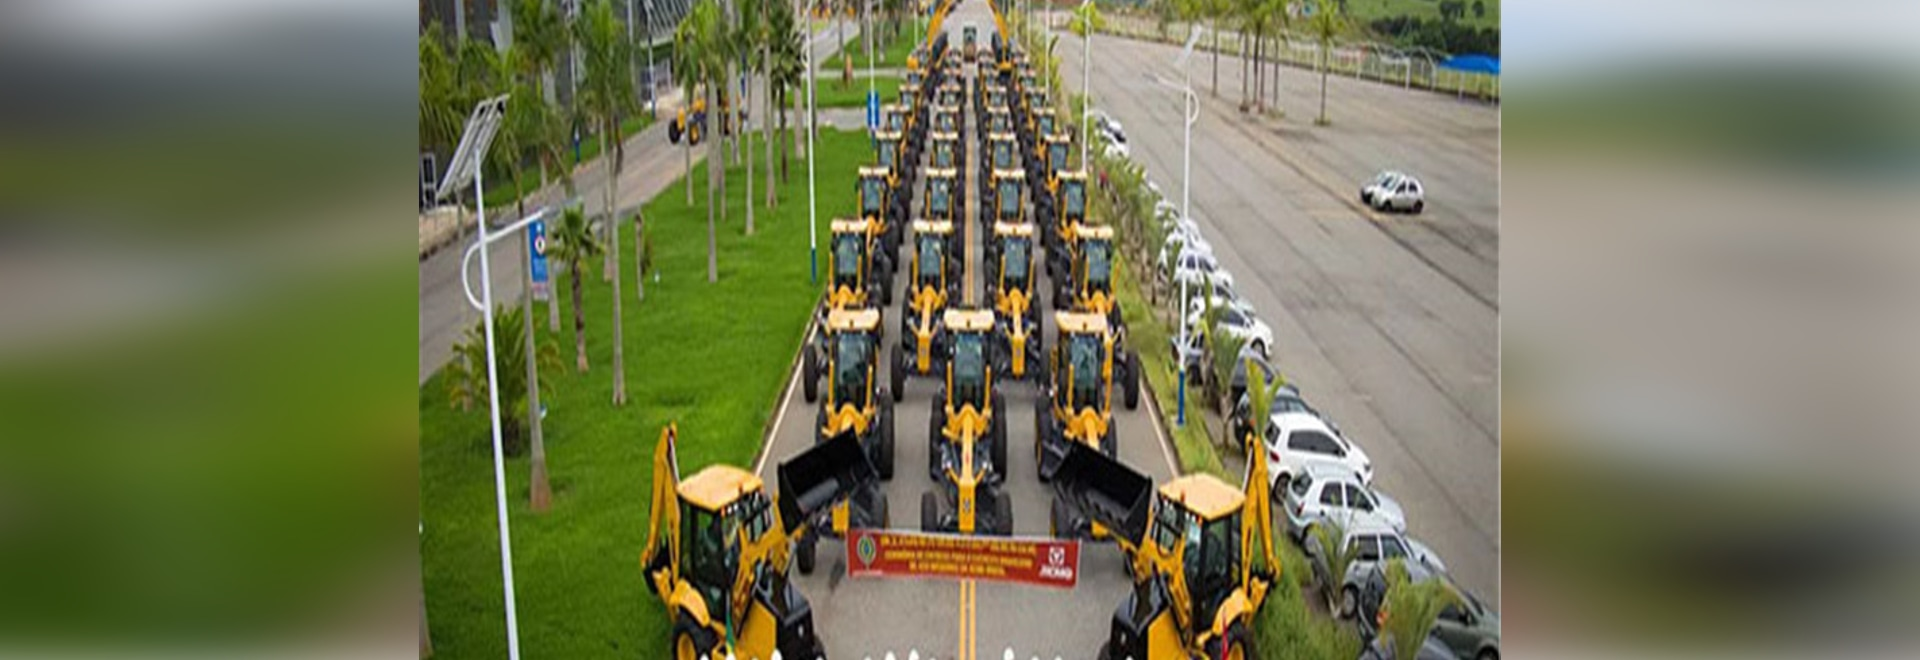 XCMG Brazil's Equipment into South American Mainstream Market